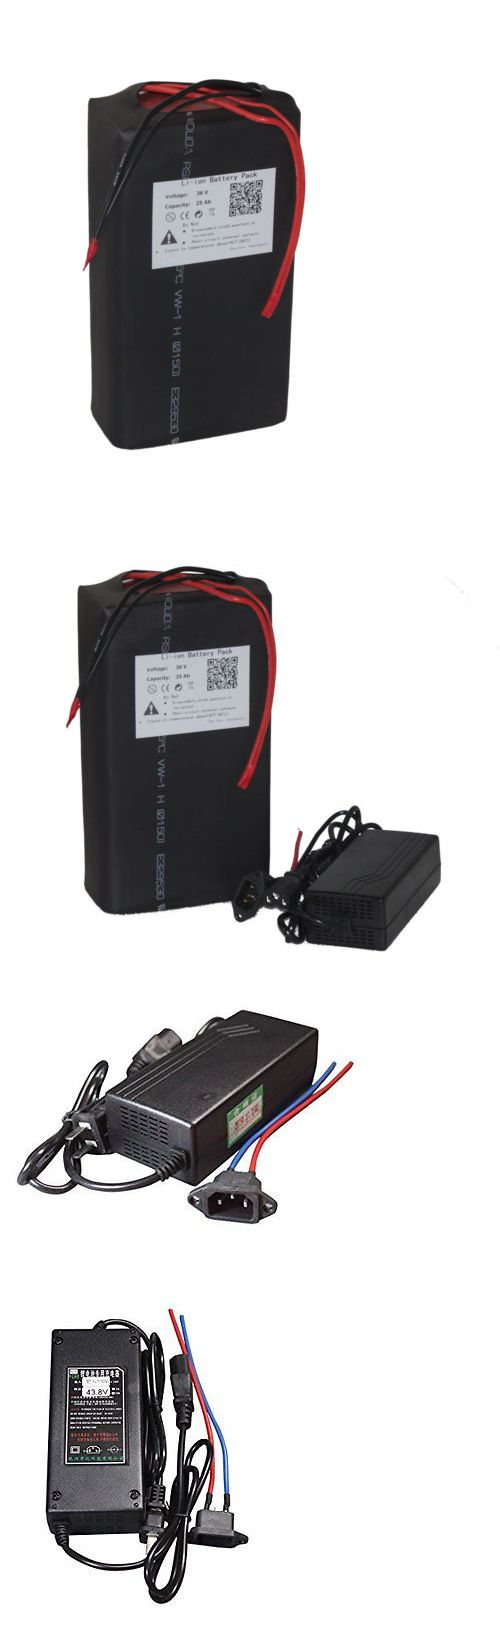 Electric Bicycle Components 177814: 36V 25Ah Lithium Batteries Pack 3A Charger Bms Power Supply Rechargeable E Bike BUY IT NOW ONLY: $450.0